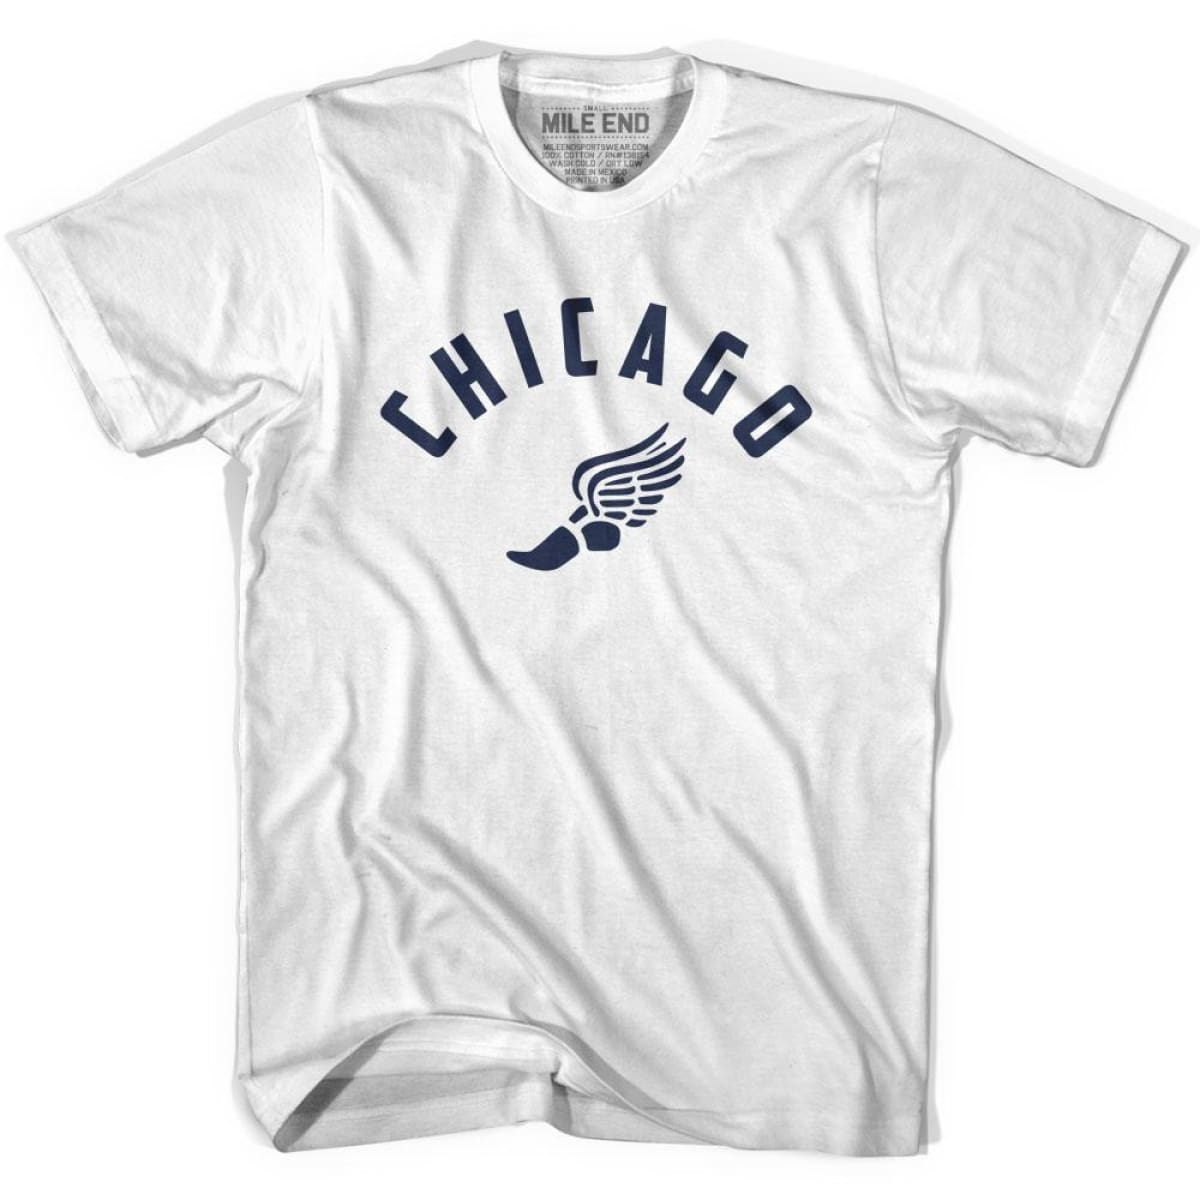 Chicago Track T-shirt - White / Youth X-Small - Mile End Track